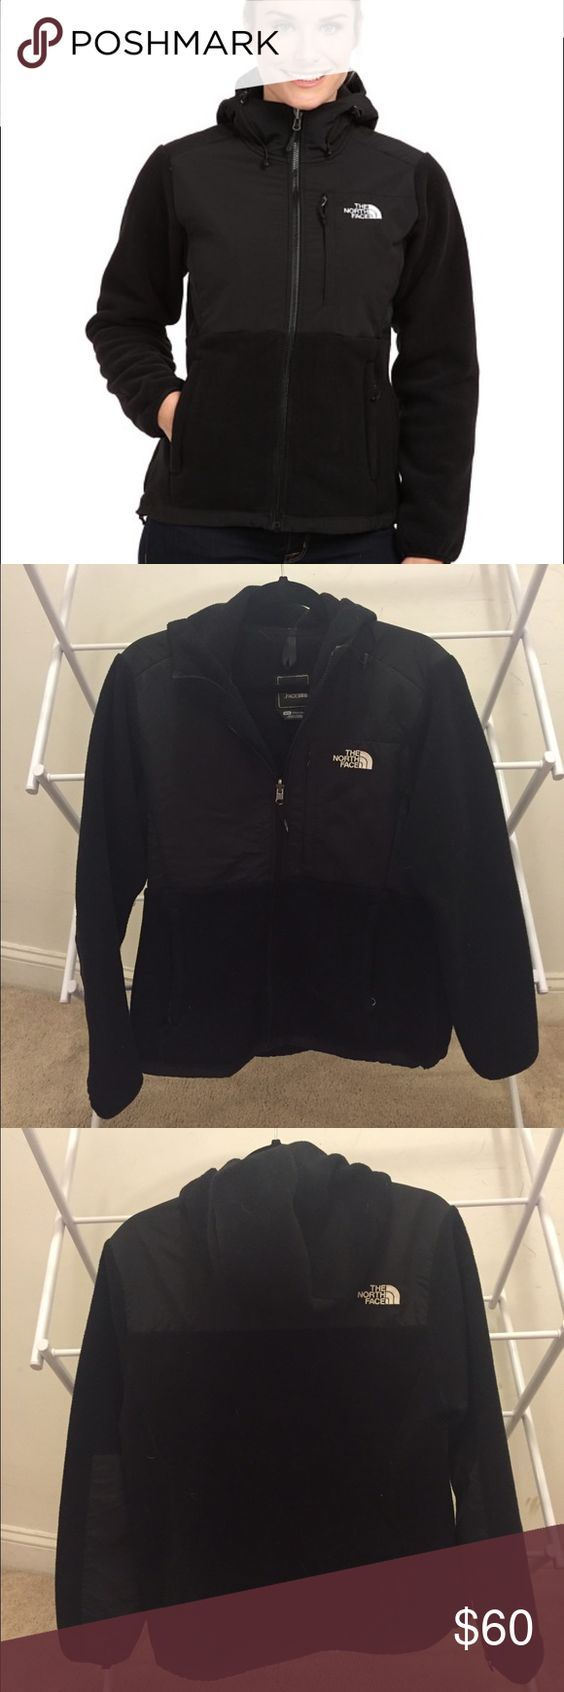 North Face Denali Jacket with Hood This fleece Denali jacket from North Face is very warm and has an attached hood. Works well alone or layered under another jacket. It is in good used condition - I purchased it but only wore it for a season. Please let me know if you have any questions! North Face Jackets & Coats